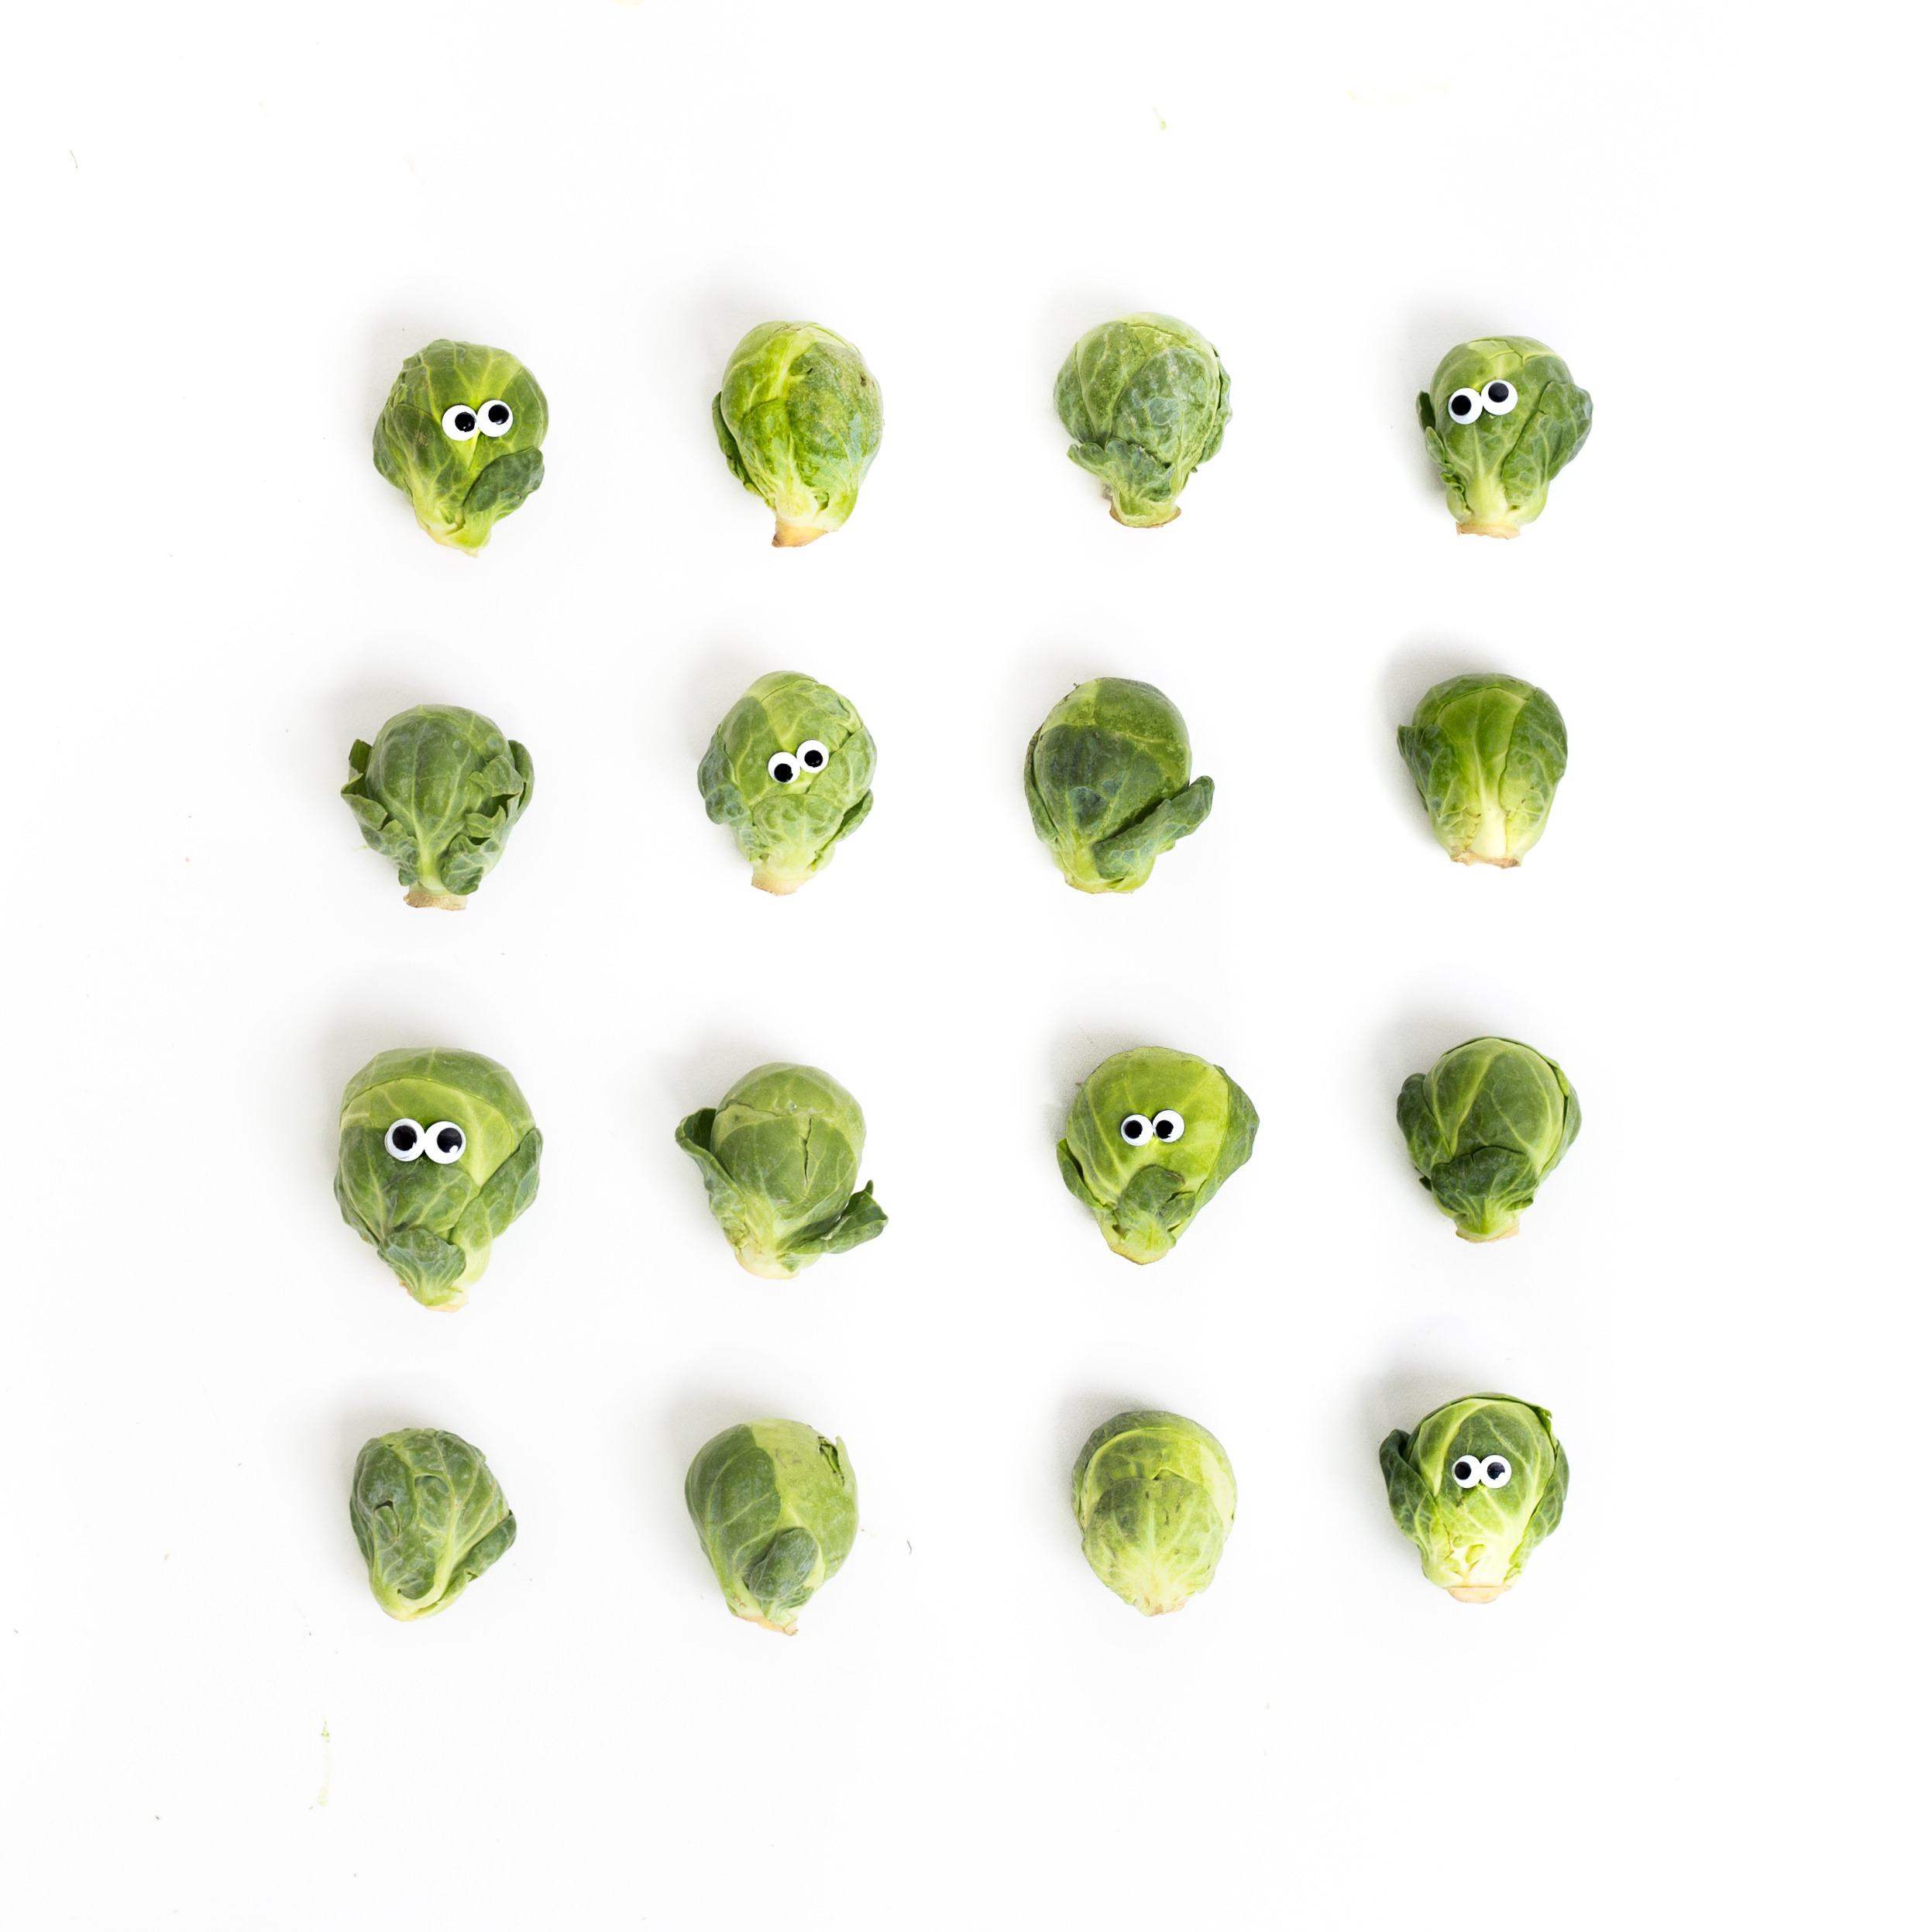 Don't worry. The Brussels Sprouts in your box won't have eyes!